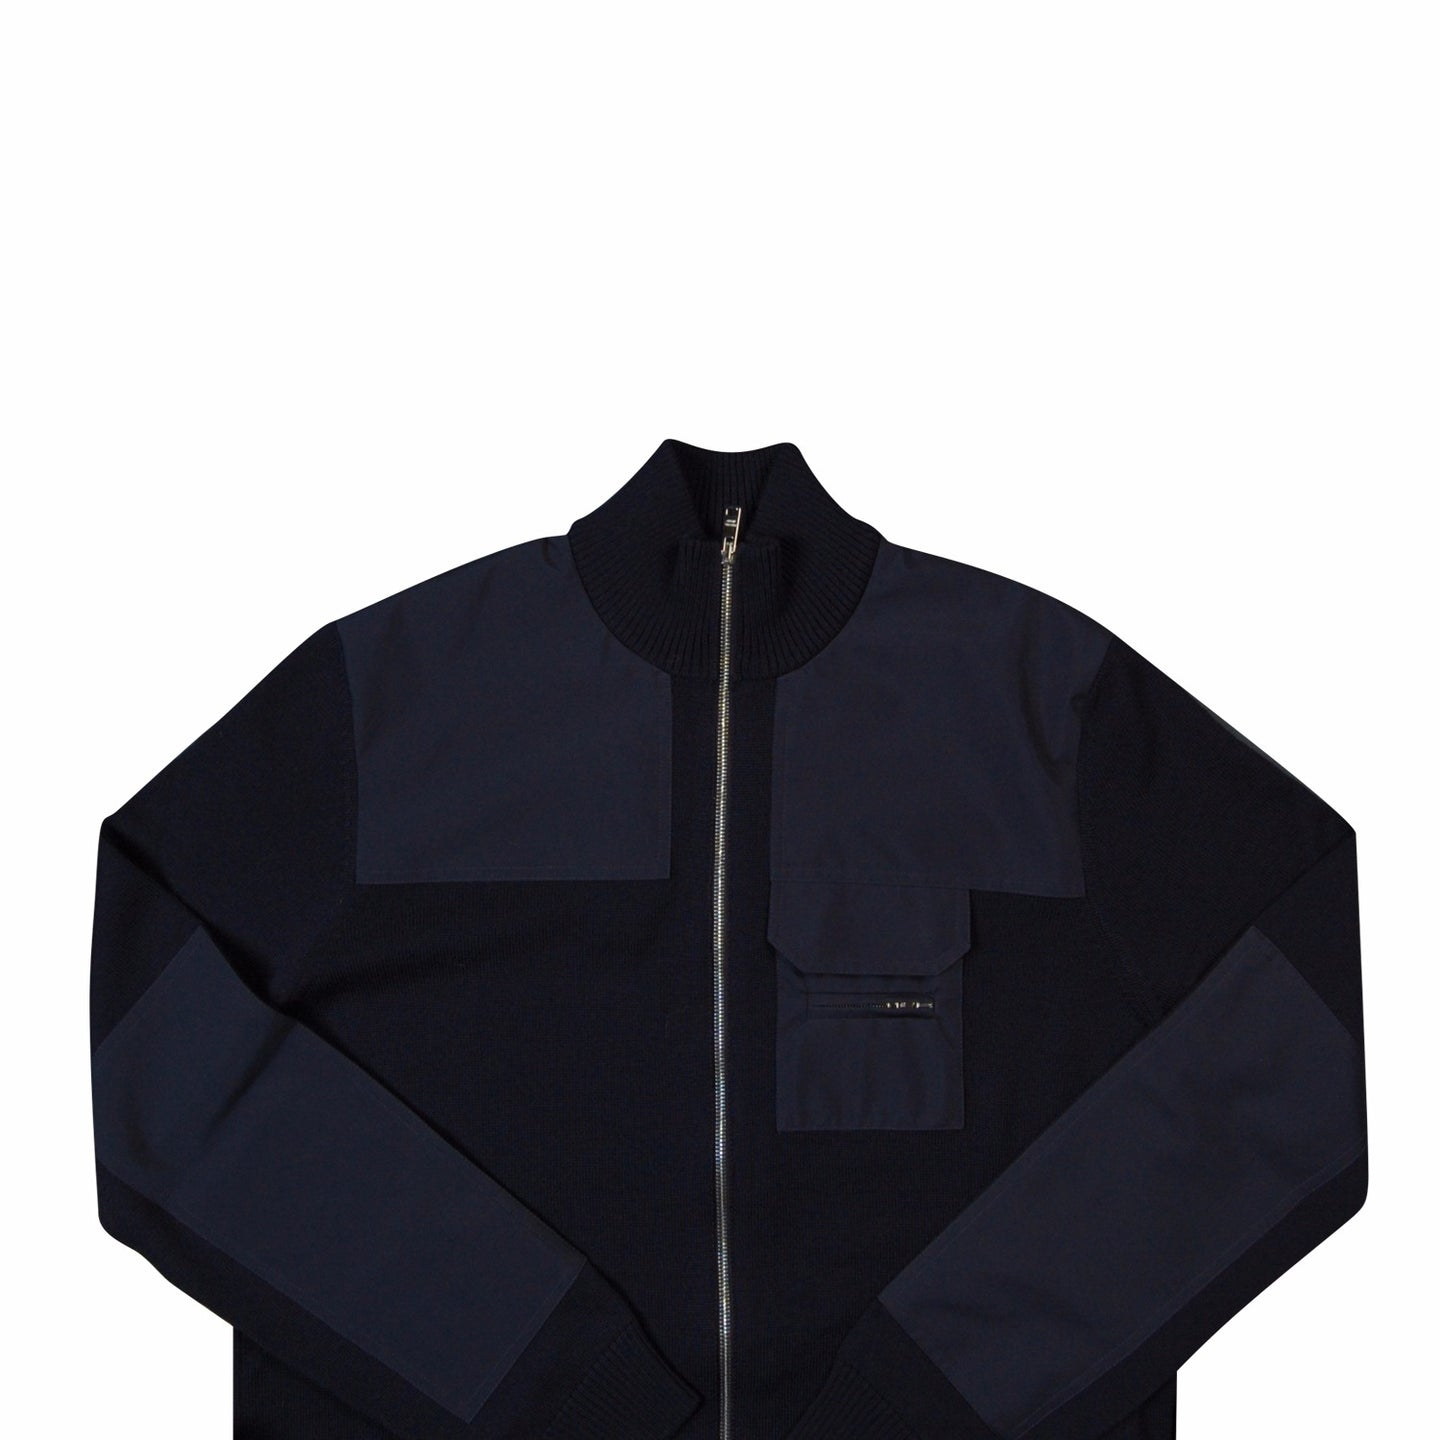 Navy Blue Prada Zip Through Cardigan